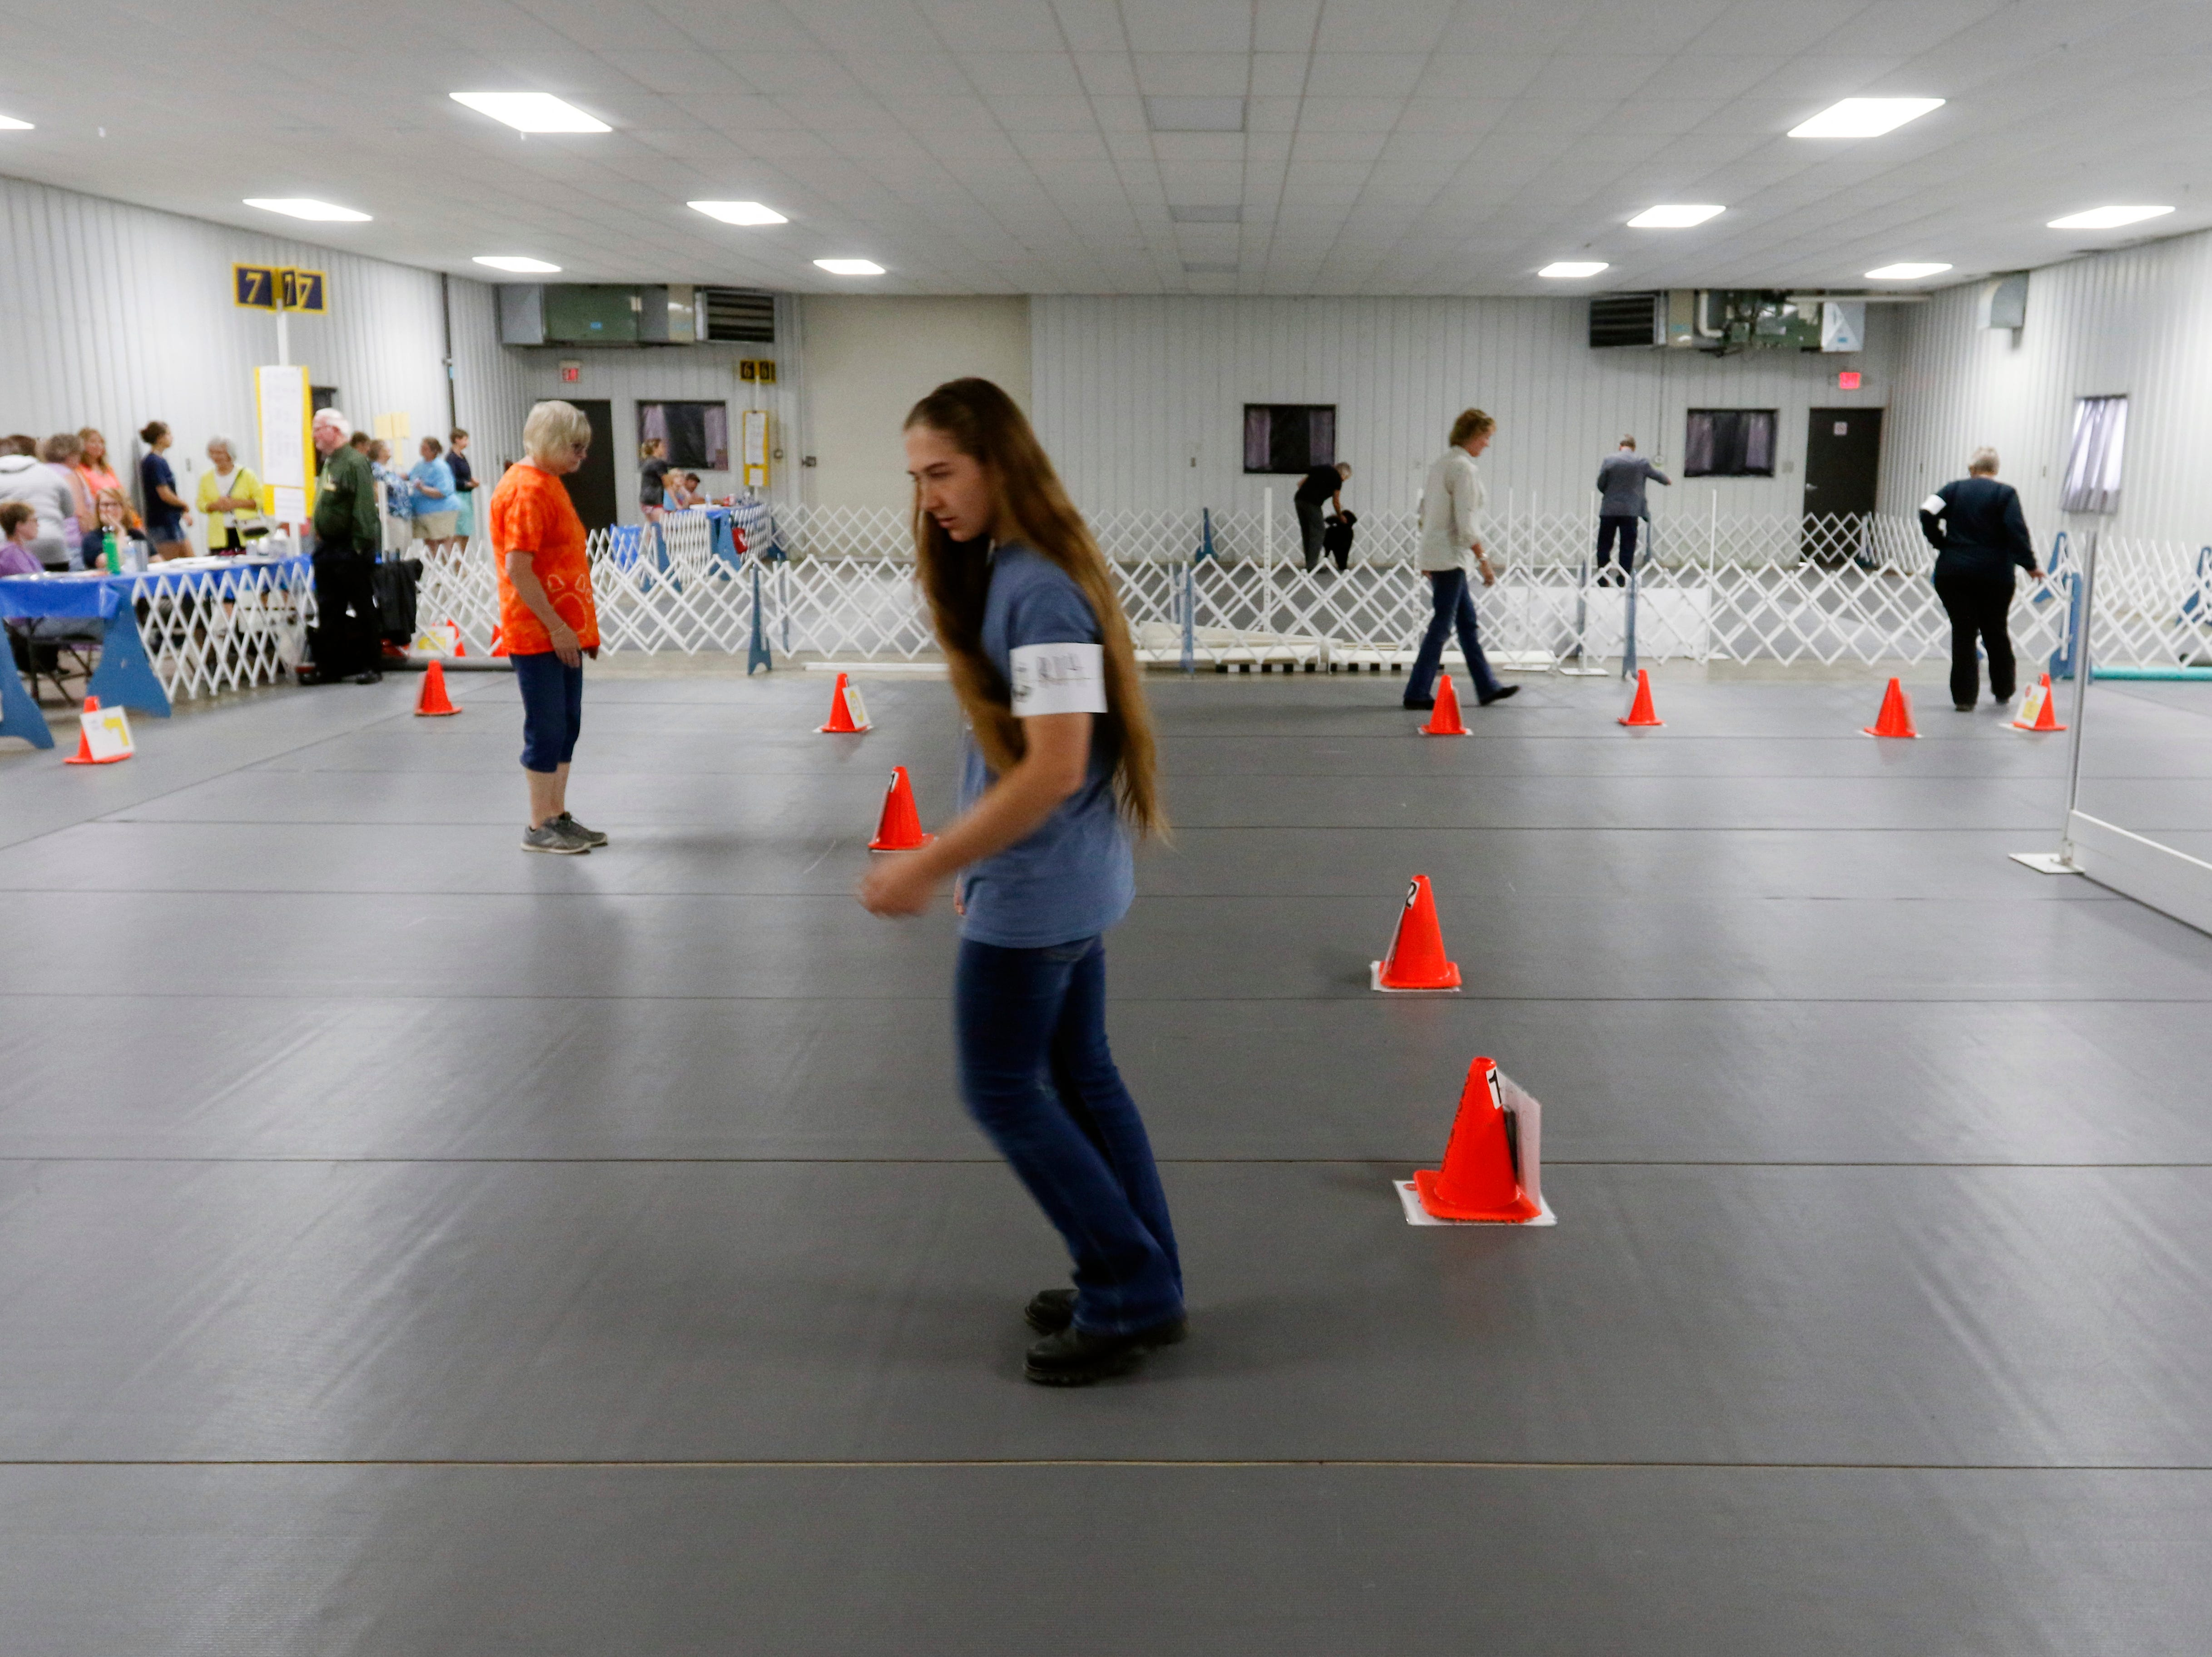 Sarah Stegall walks the rally master course to prepare to compete during the Marshfield Area Kennel Club's All-Breed Dog Show, Obedience Trials and Rally Trials at the Central Wisconsin Fairgrounds in Marshfield Saturday, August 18, 2018.